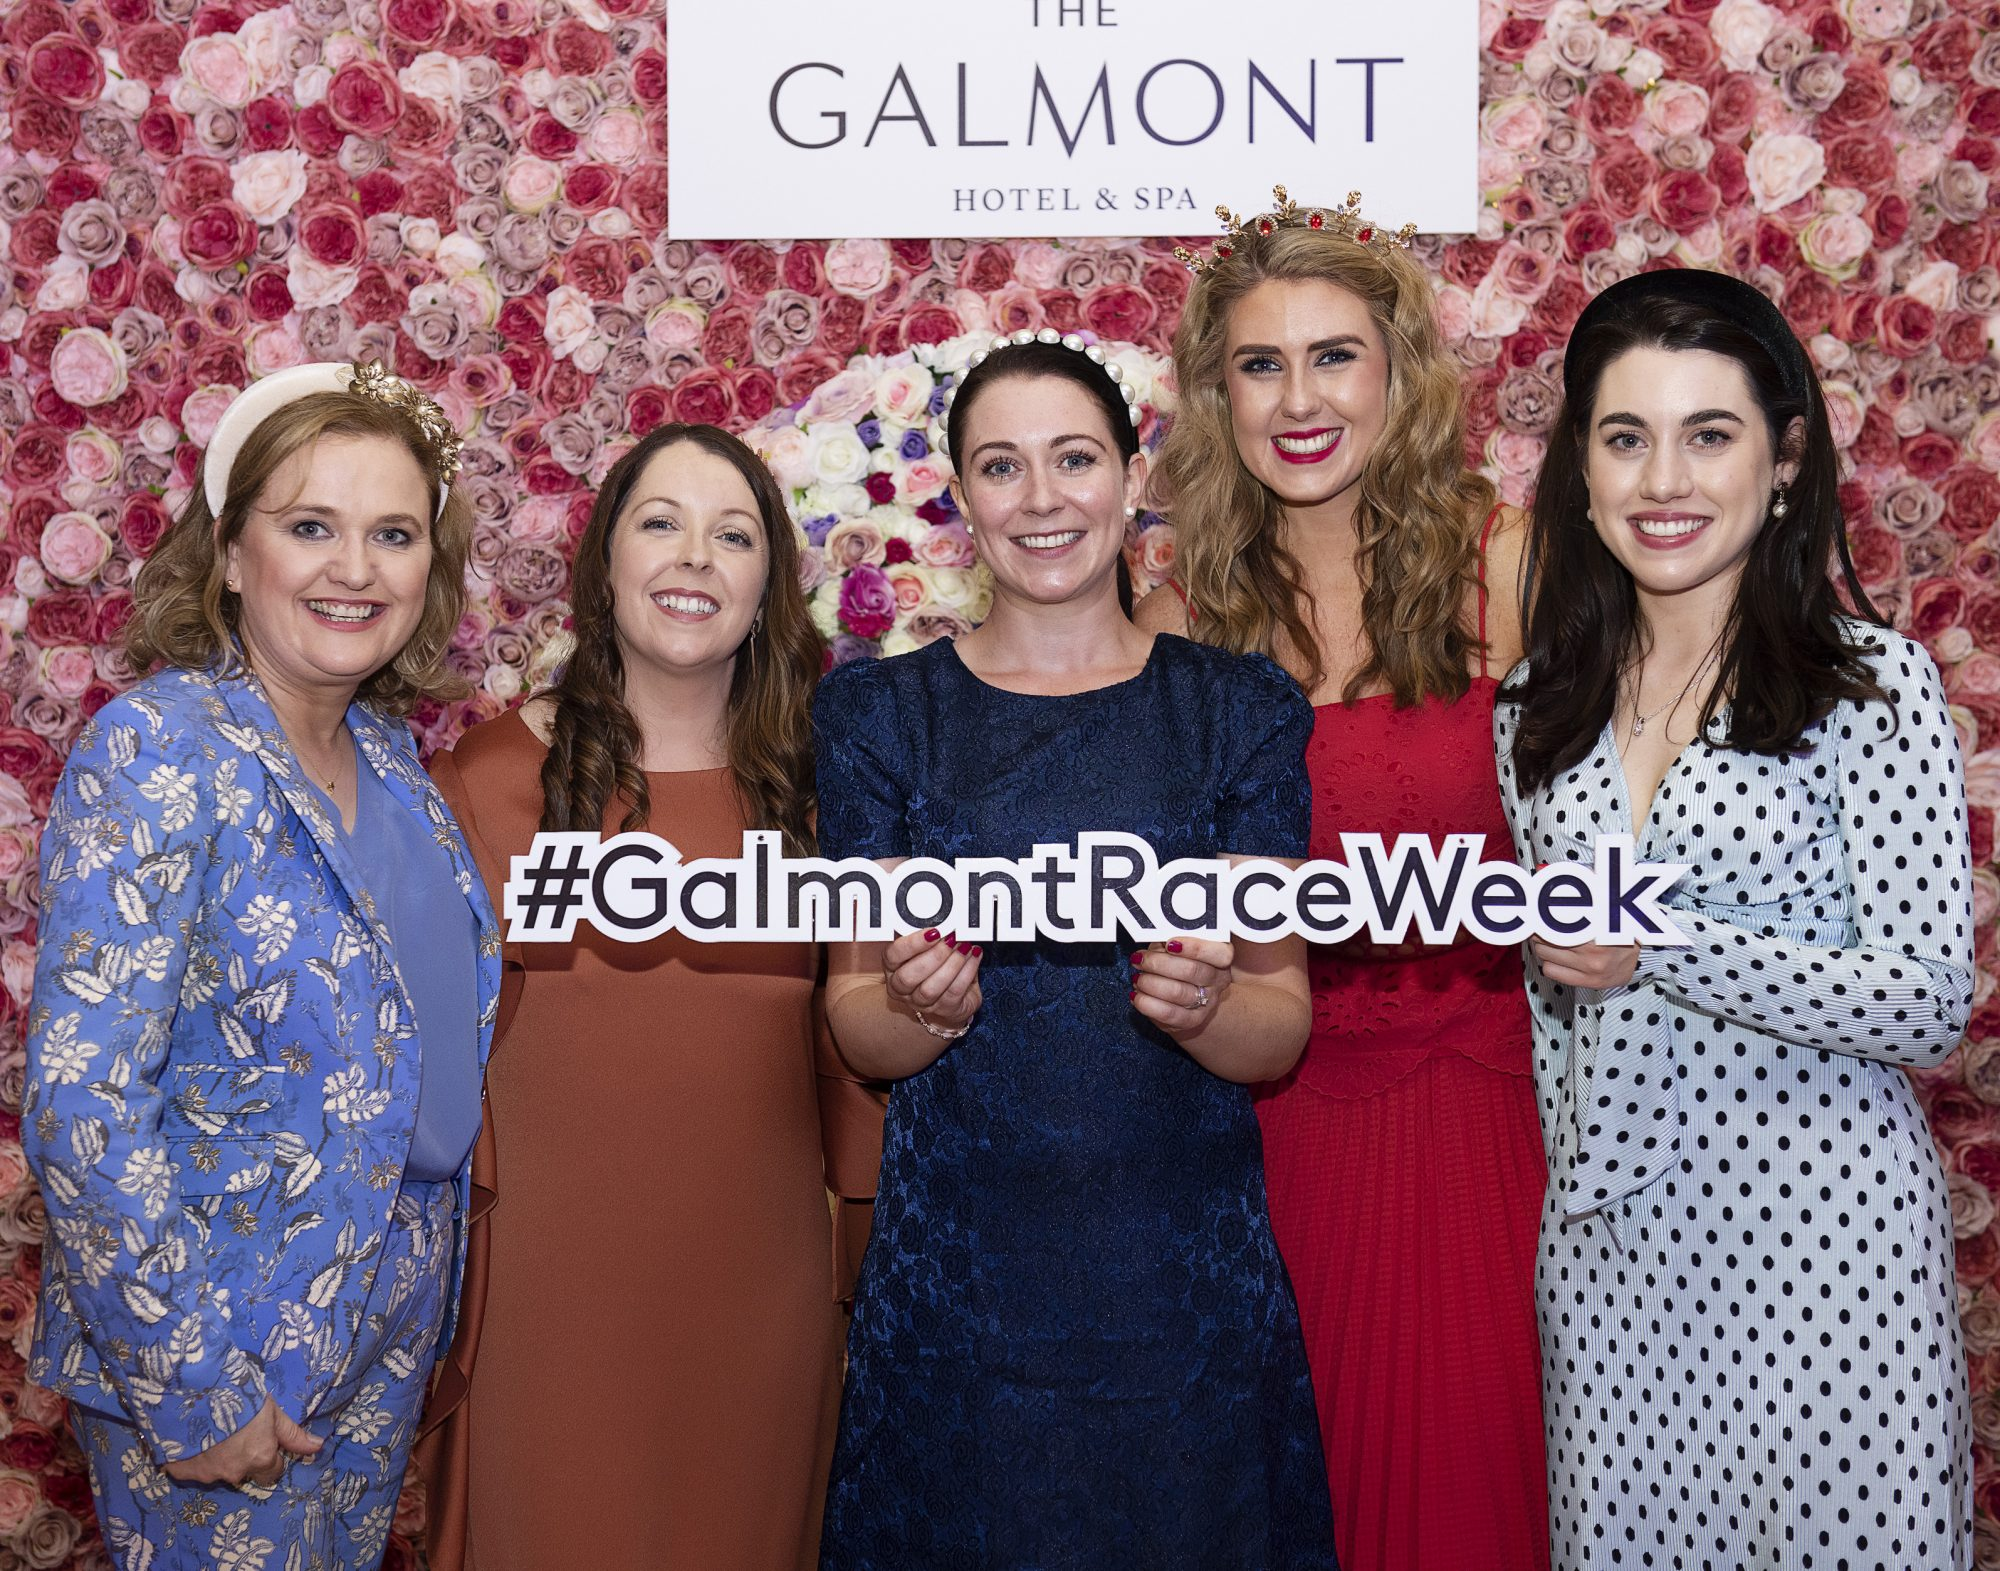 Karen Jones, Yvonne Cashin, X, Olwyn Sherry, Louise O'Donnellan at the #GalmontGirlsSquad competition in the Galmont Hotel and Spa in Galway City. Photo: Andrew Downes, xposure